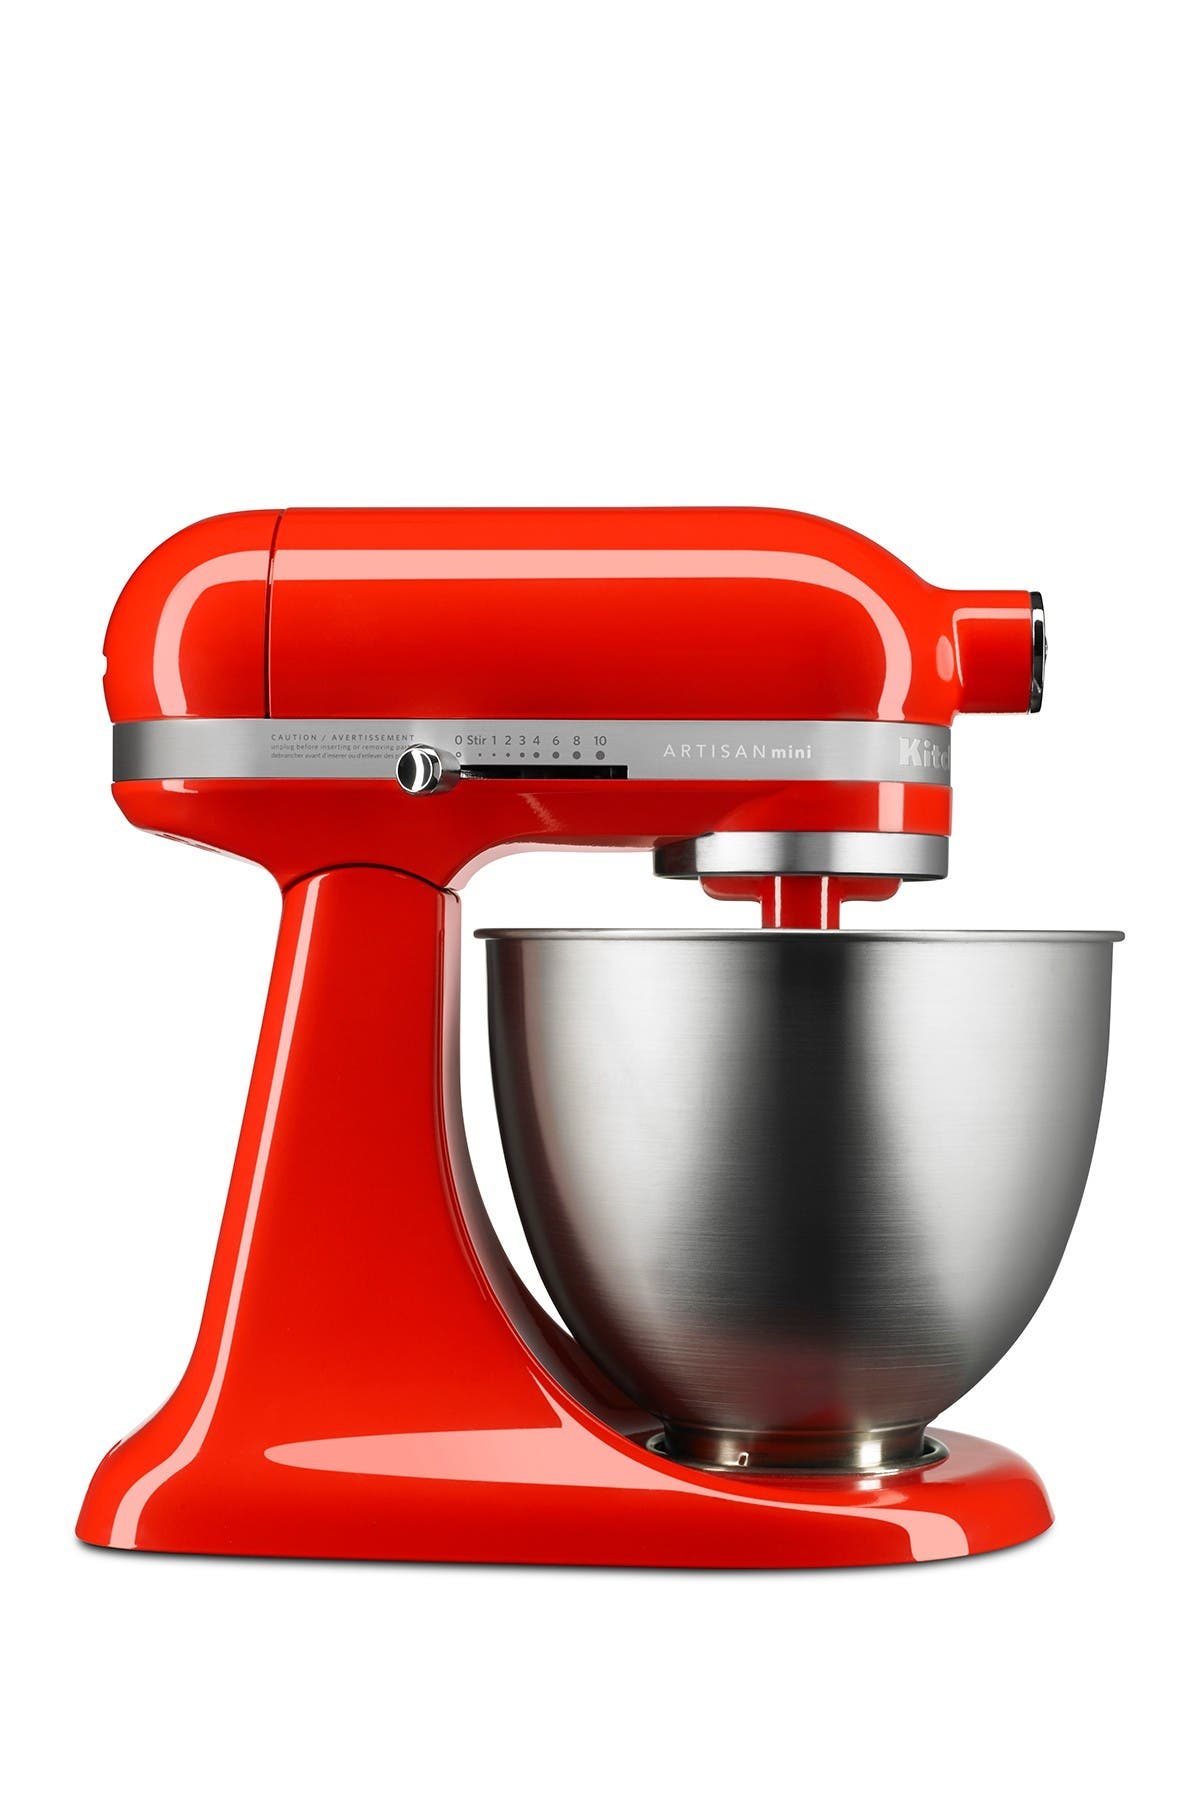 Image of KitchenAid 3.5-Quart Artisan Mini Stand Mixer - Hot Sauce